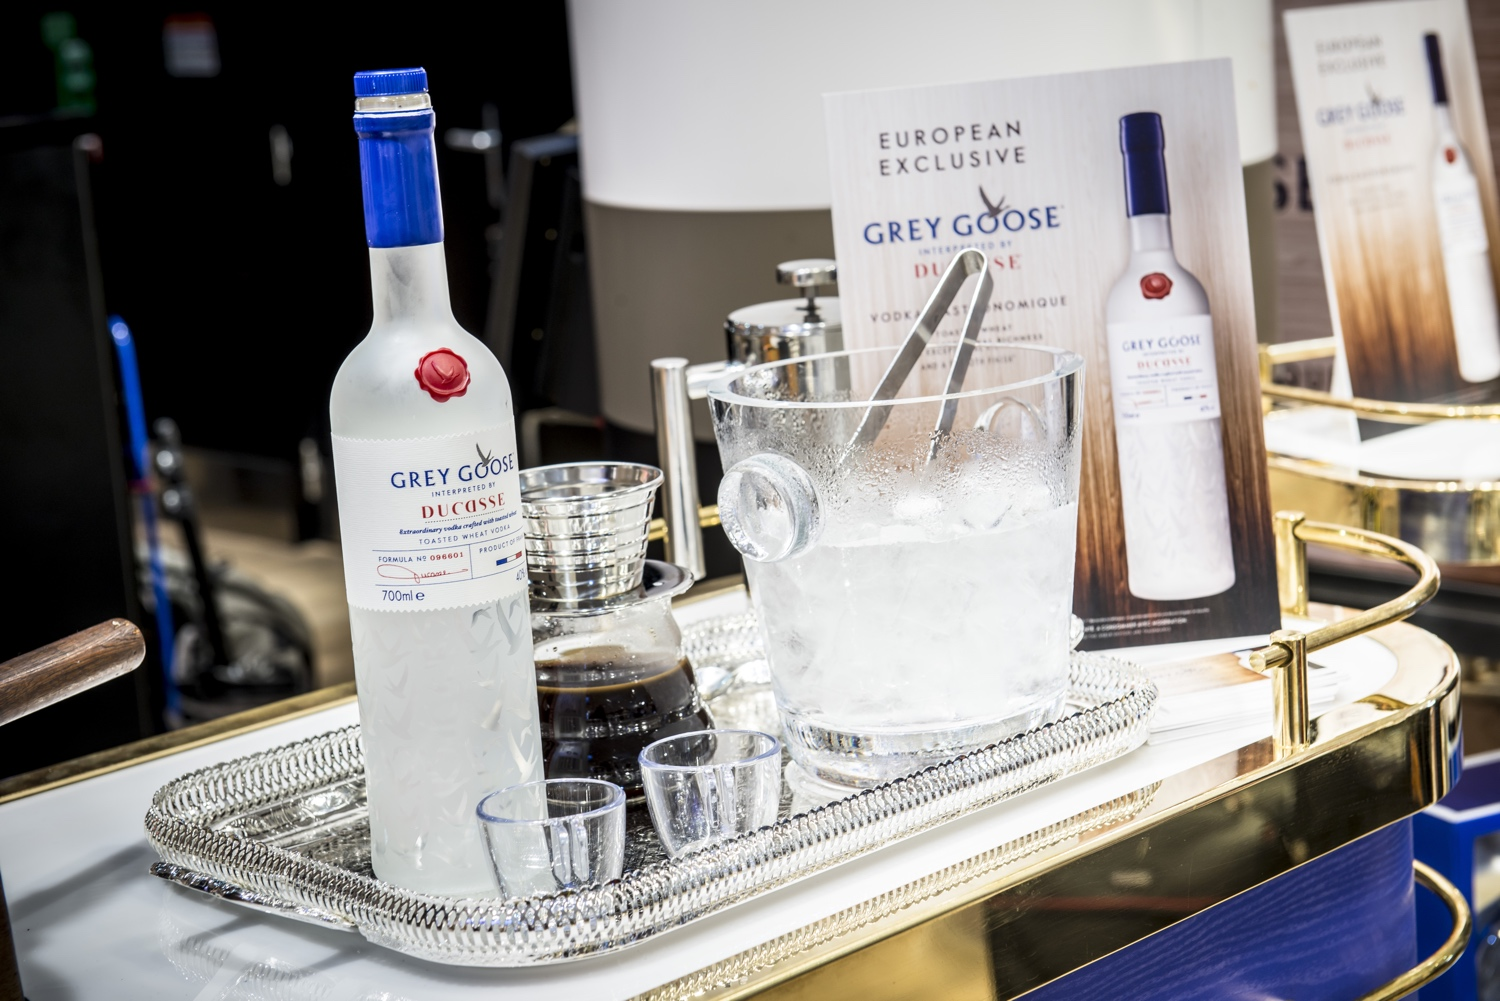 Grey Goose Interpreted by Ducasse, una colaboración sin precedentes